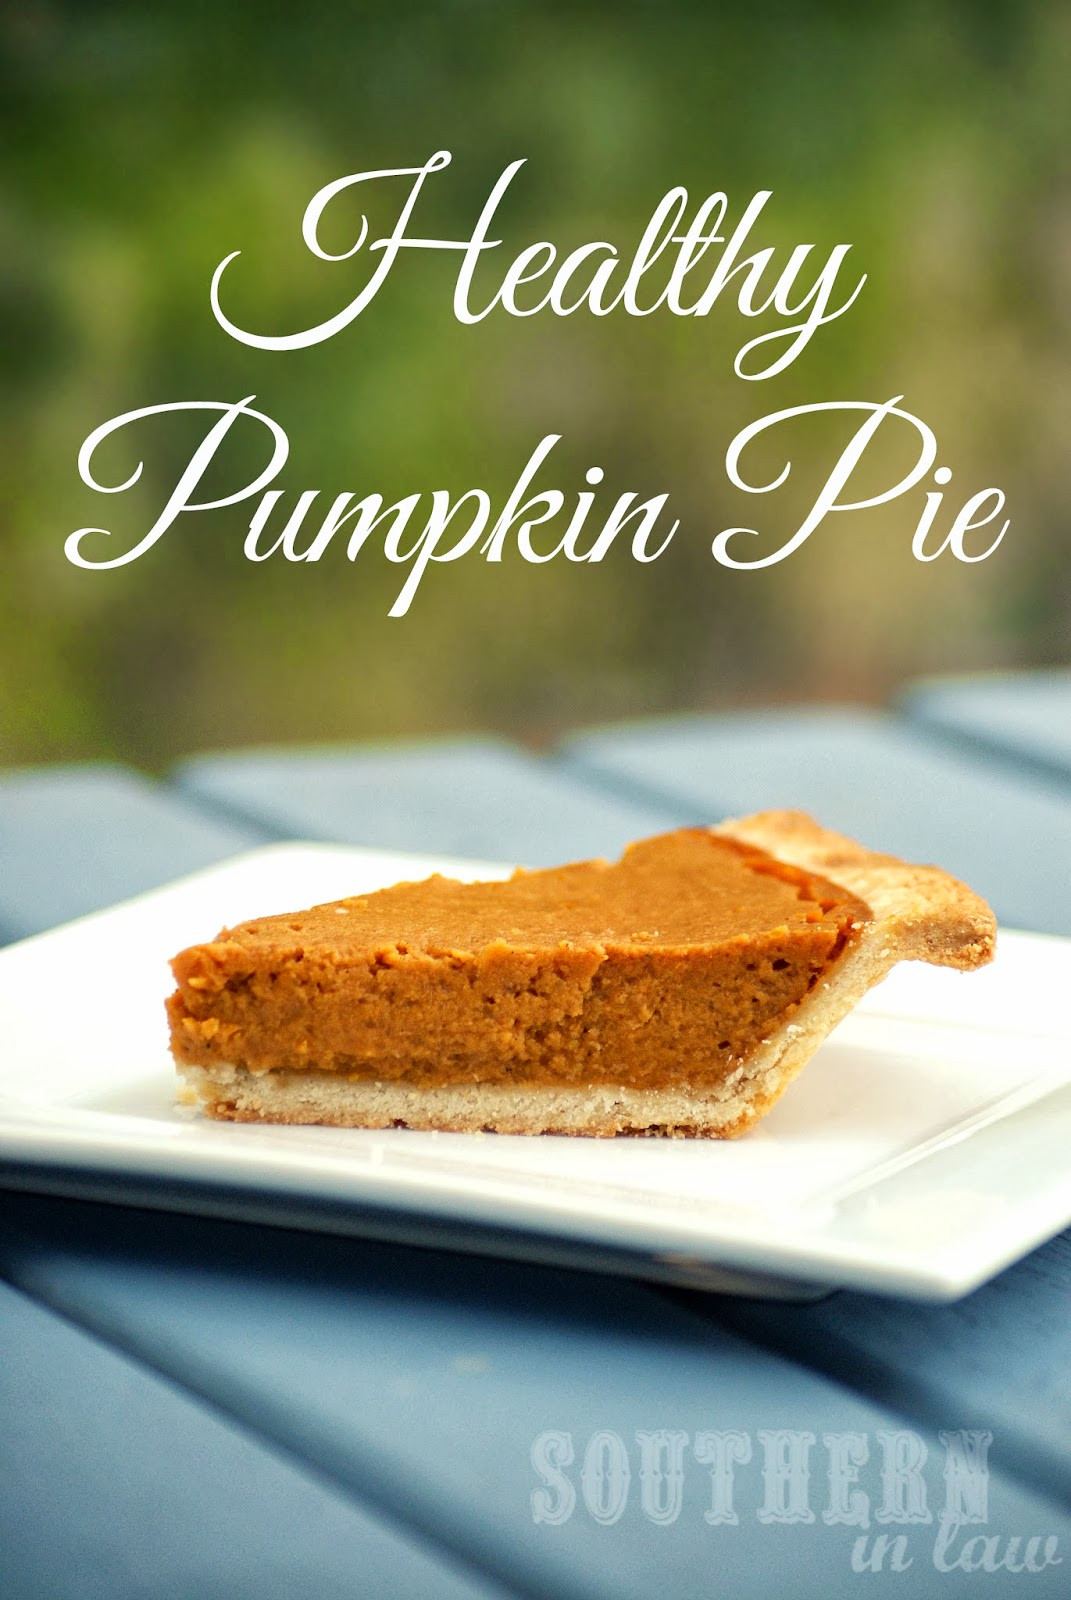 Pumpkin Pie Healthy  Southern In Law Healthy Pumpkin Pie Recipe